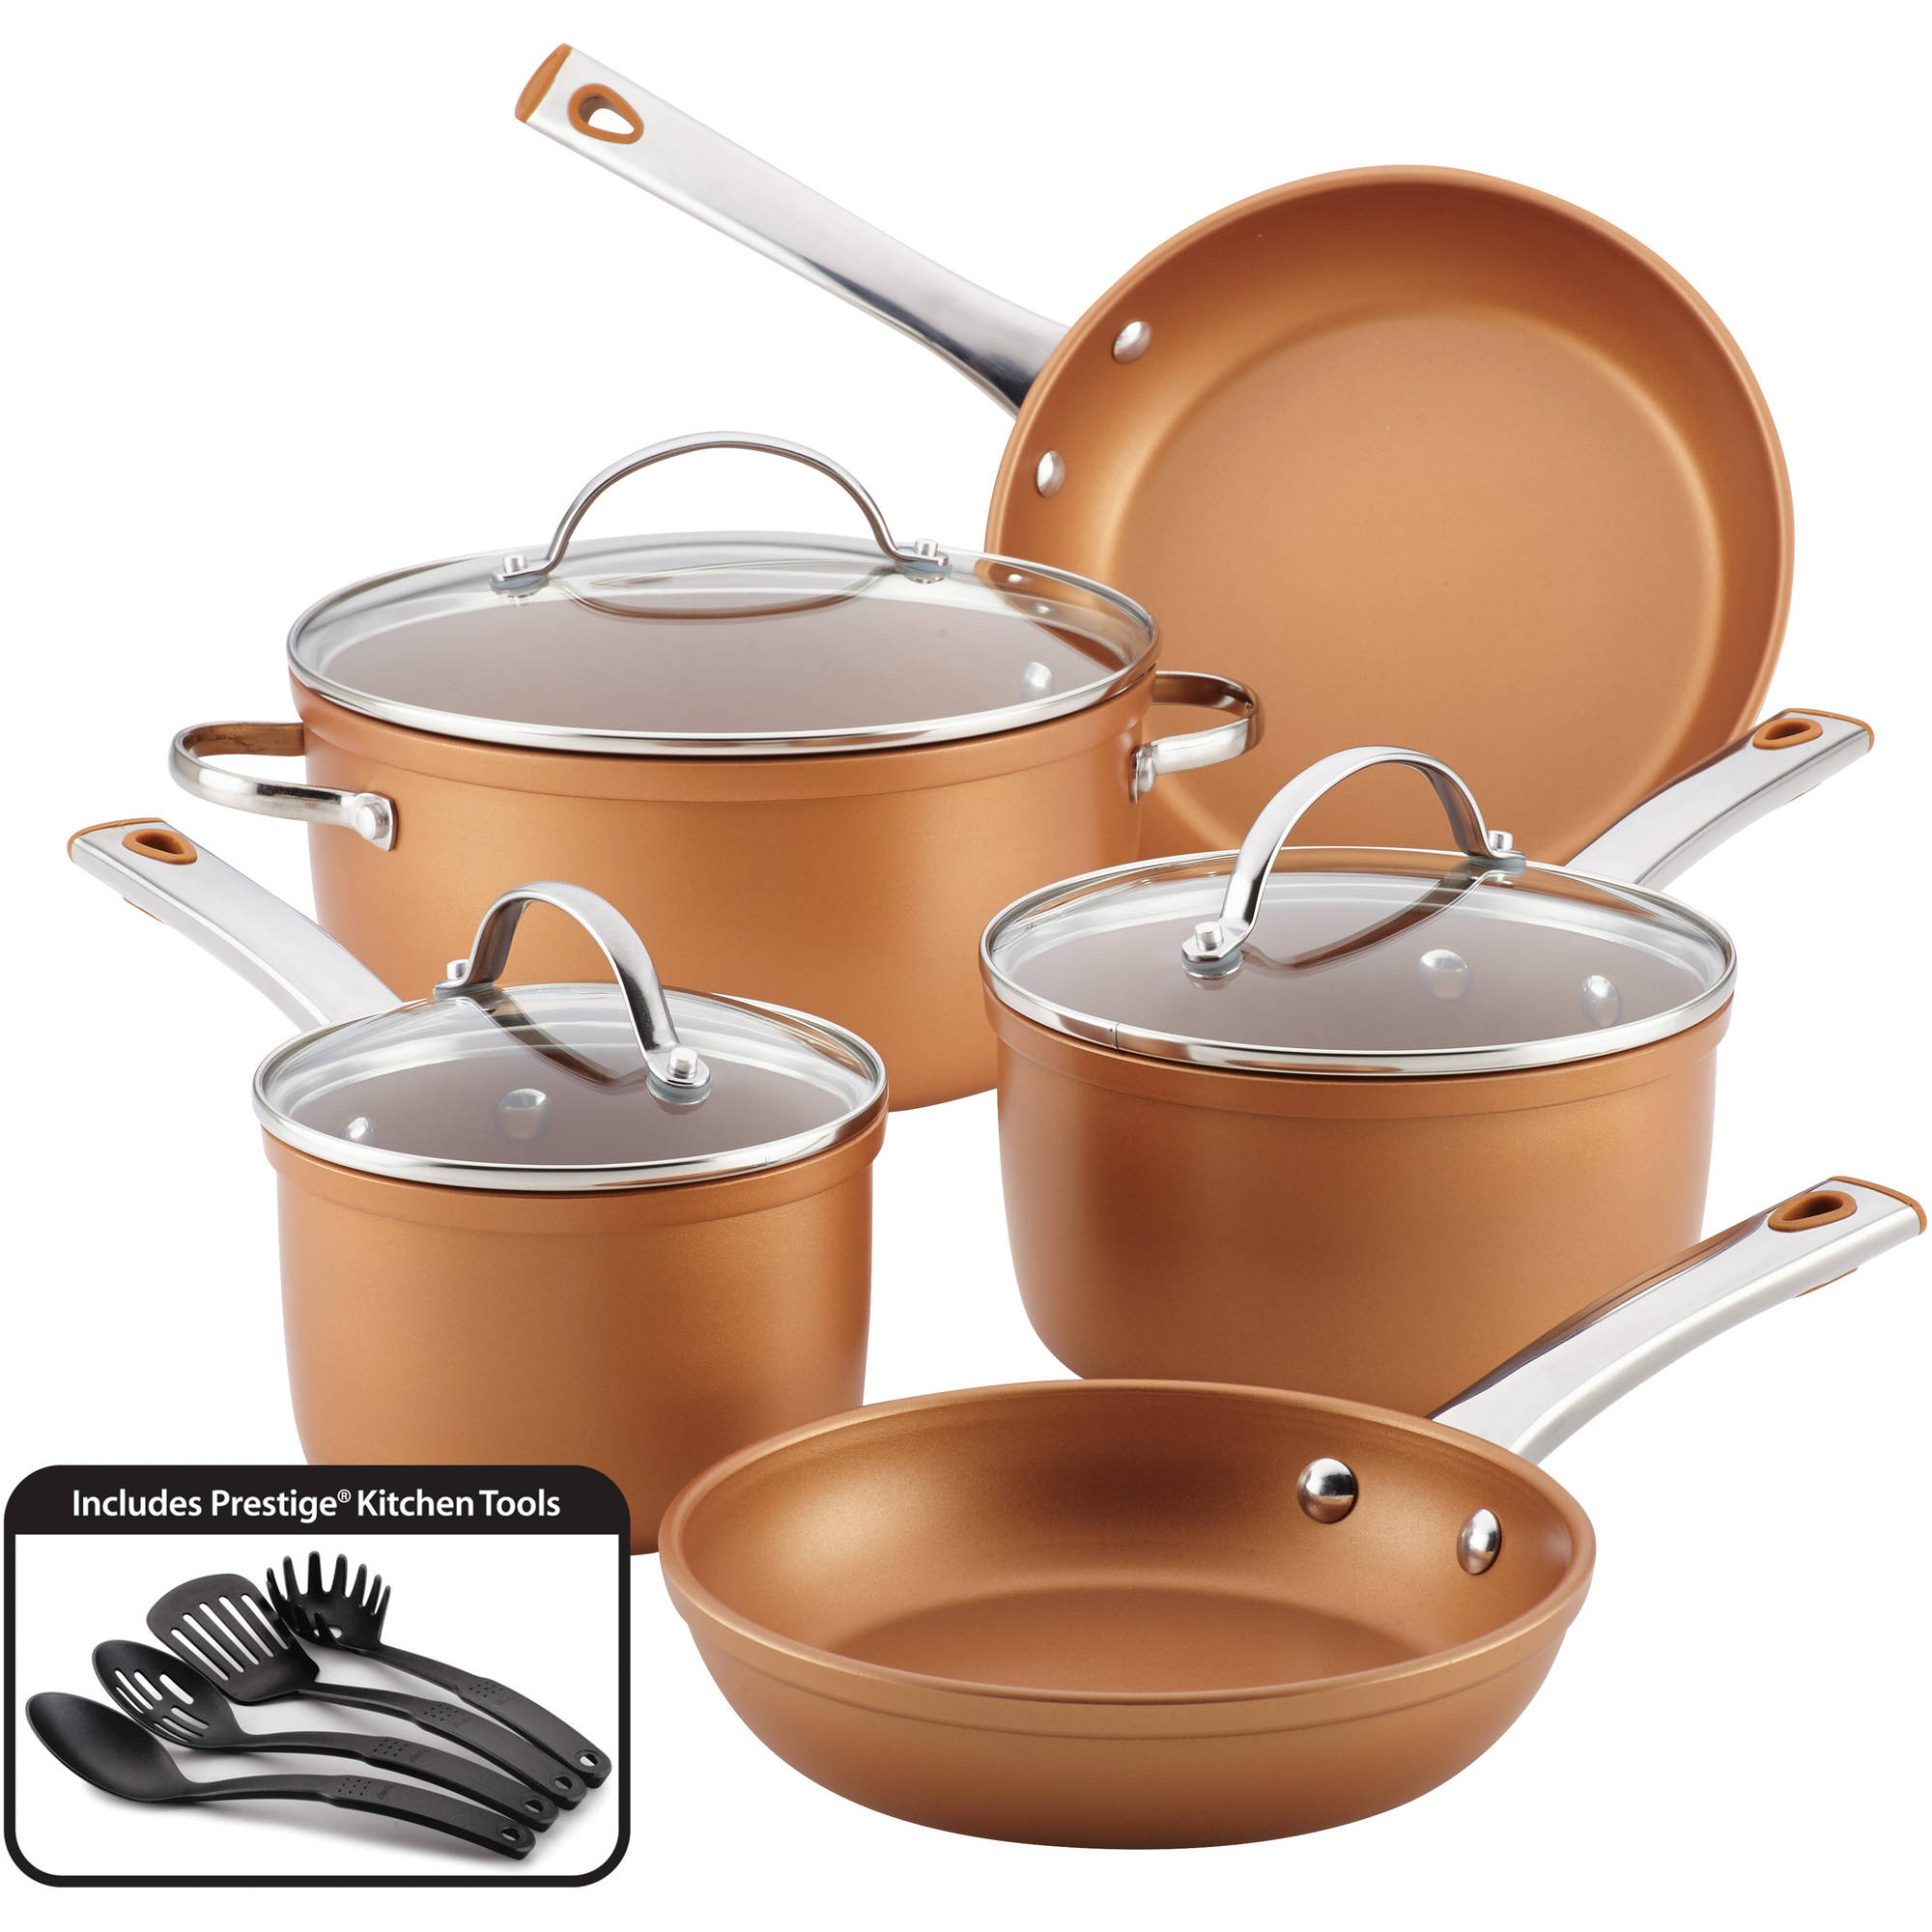 Farberware 12-Piece Colortech Aluminum Nonstick Cookware ...